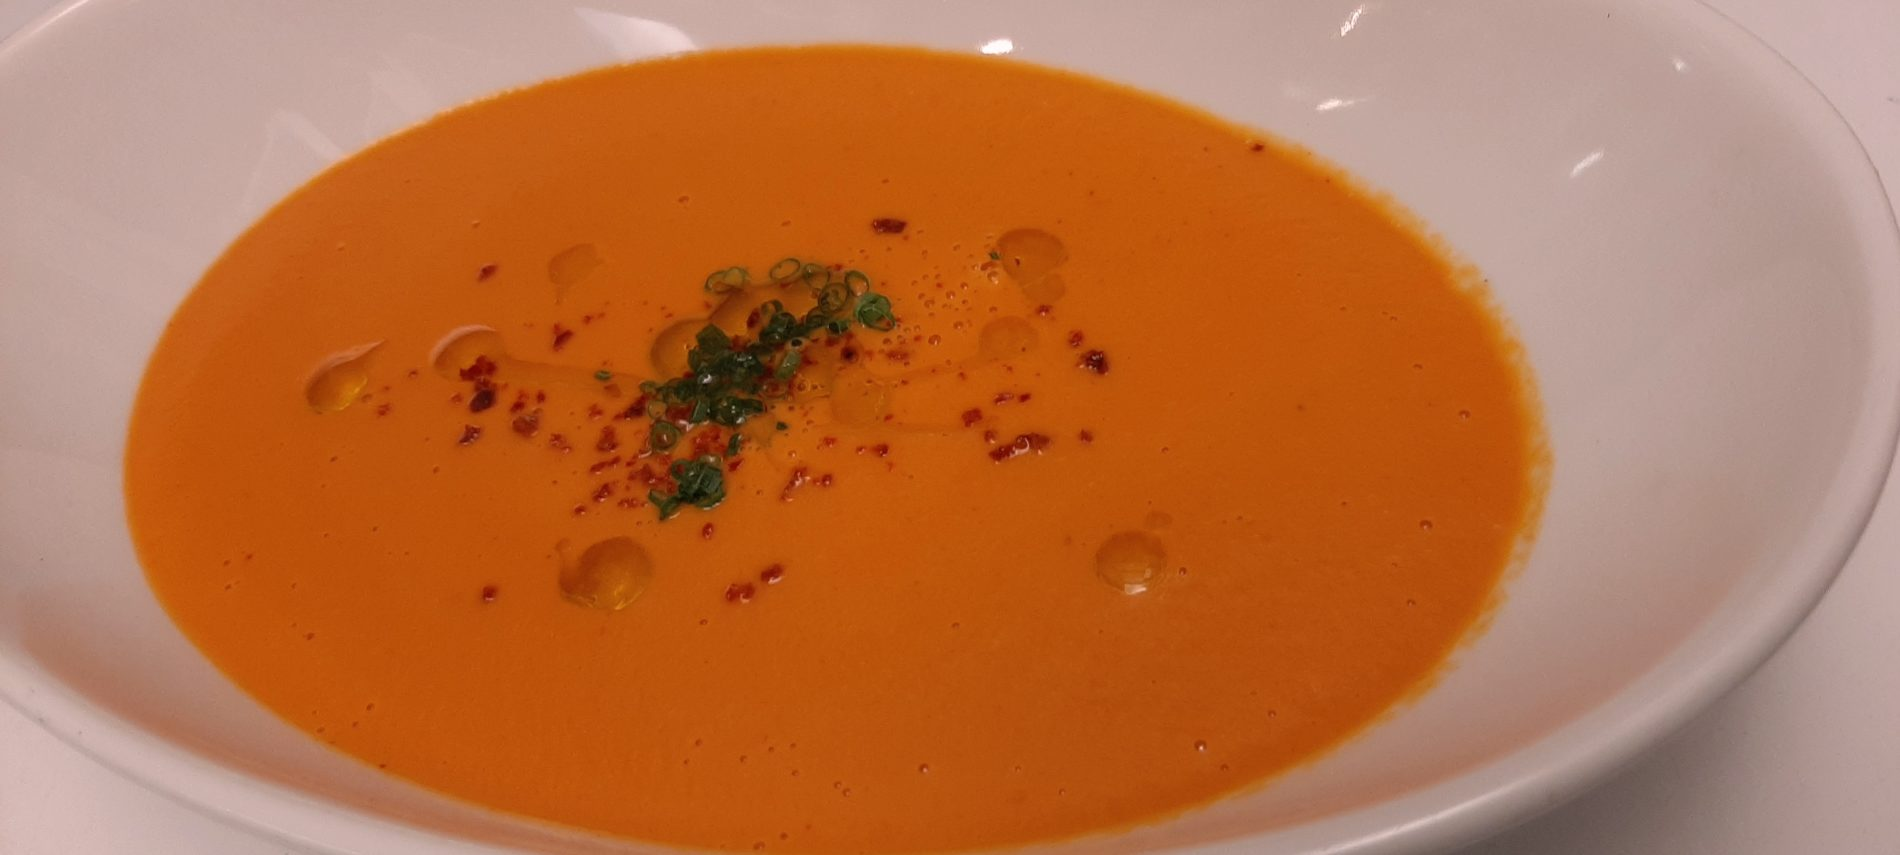 a white bowl filled with Tomato bisque soup sprinkled with sliced chives and drizzled with olive oil